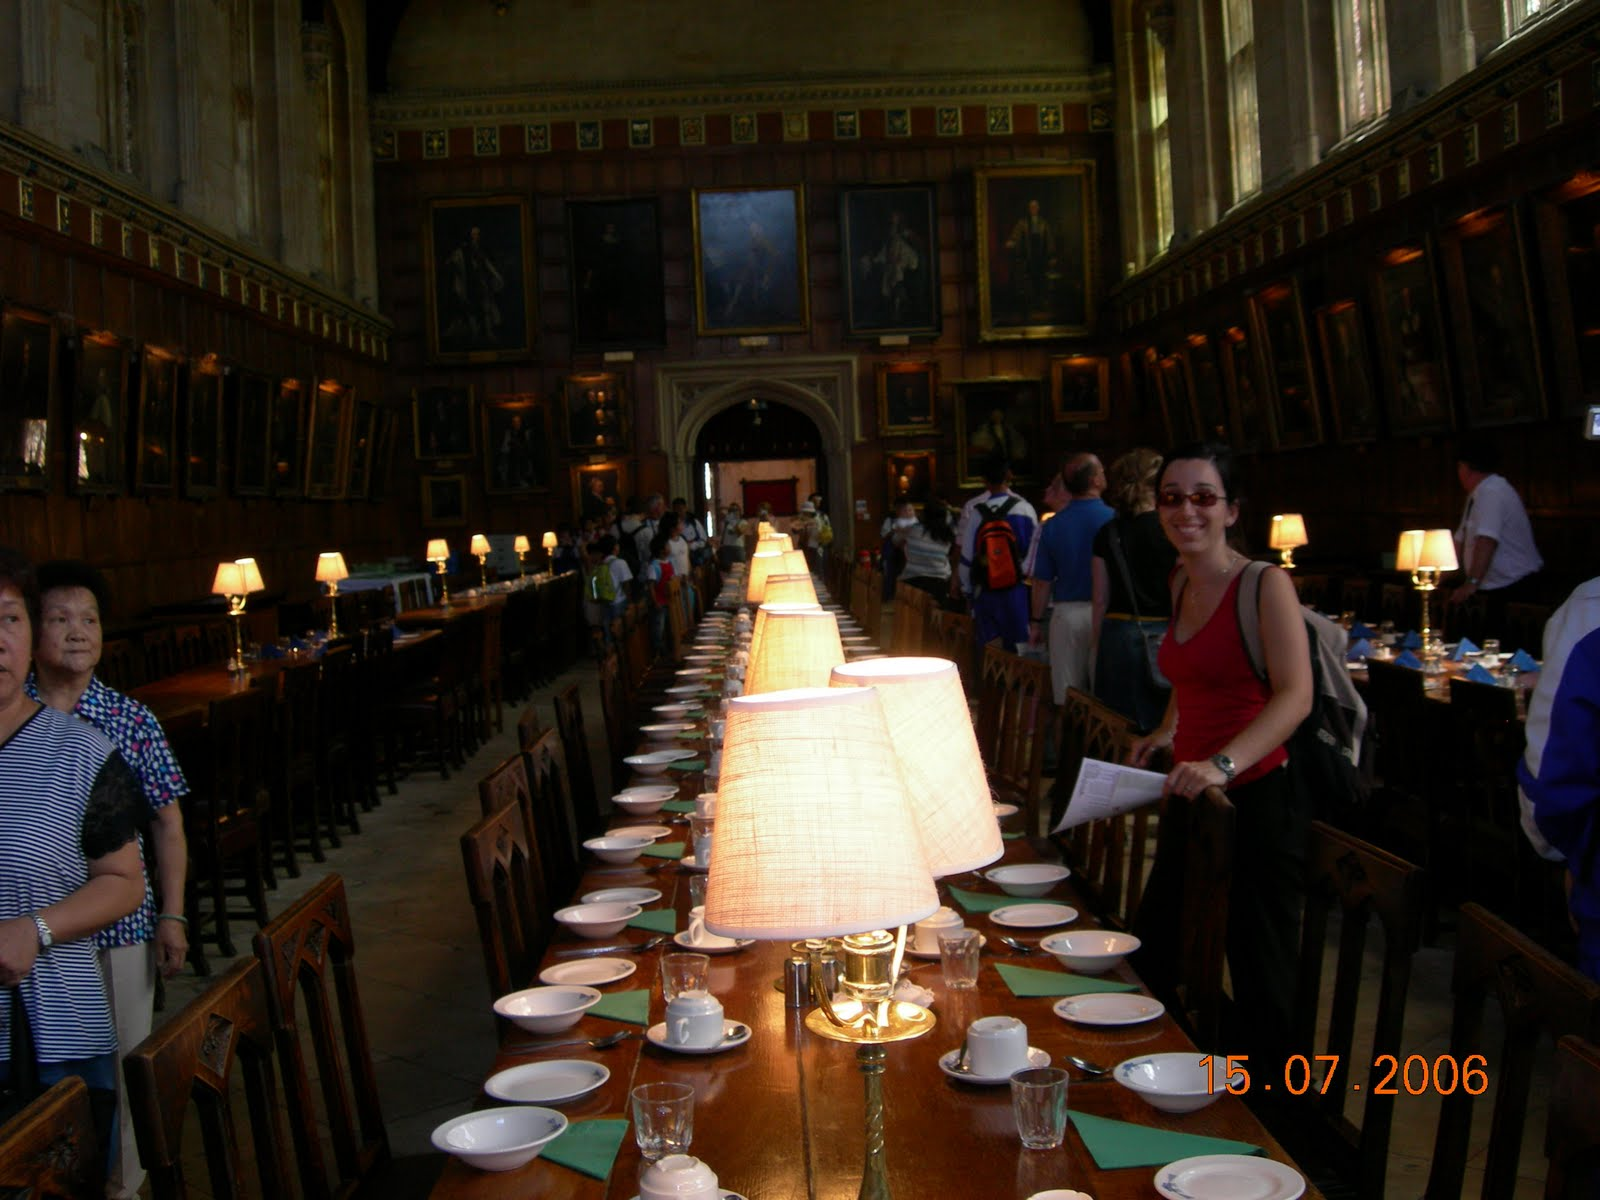 Isabel de paseo por el mundo inglaterra sur oxford b for Comedor harry potter